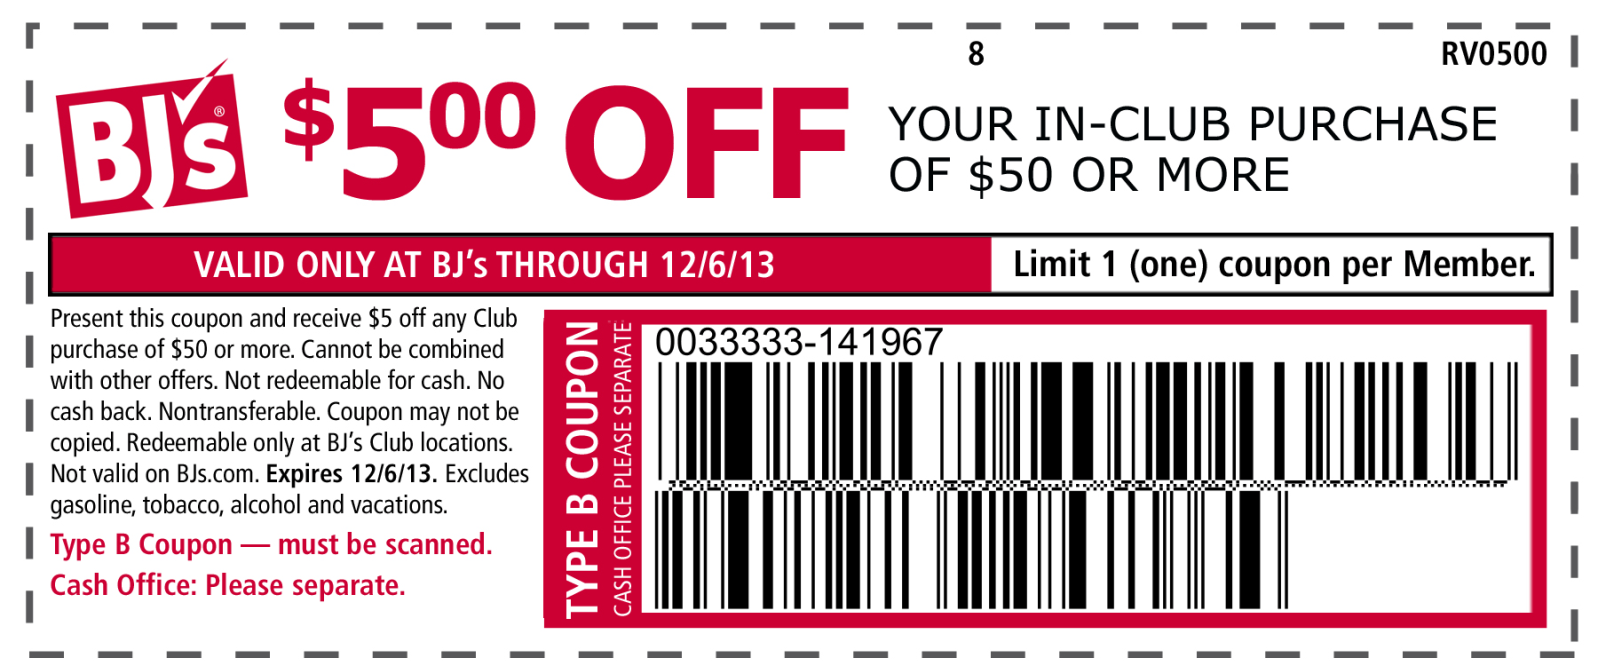 picture about Bjs One Day Pass Printable named Pin upon The Coupon codes Application